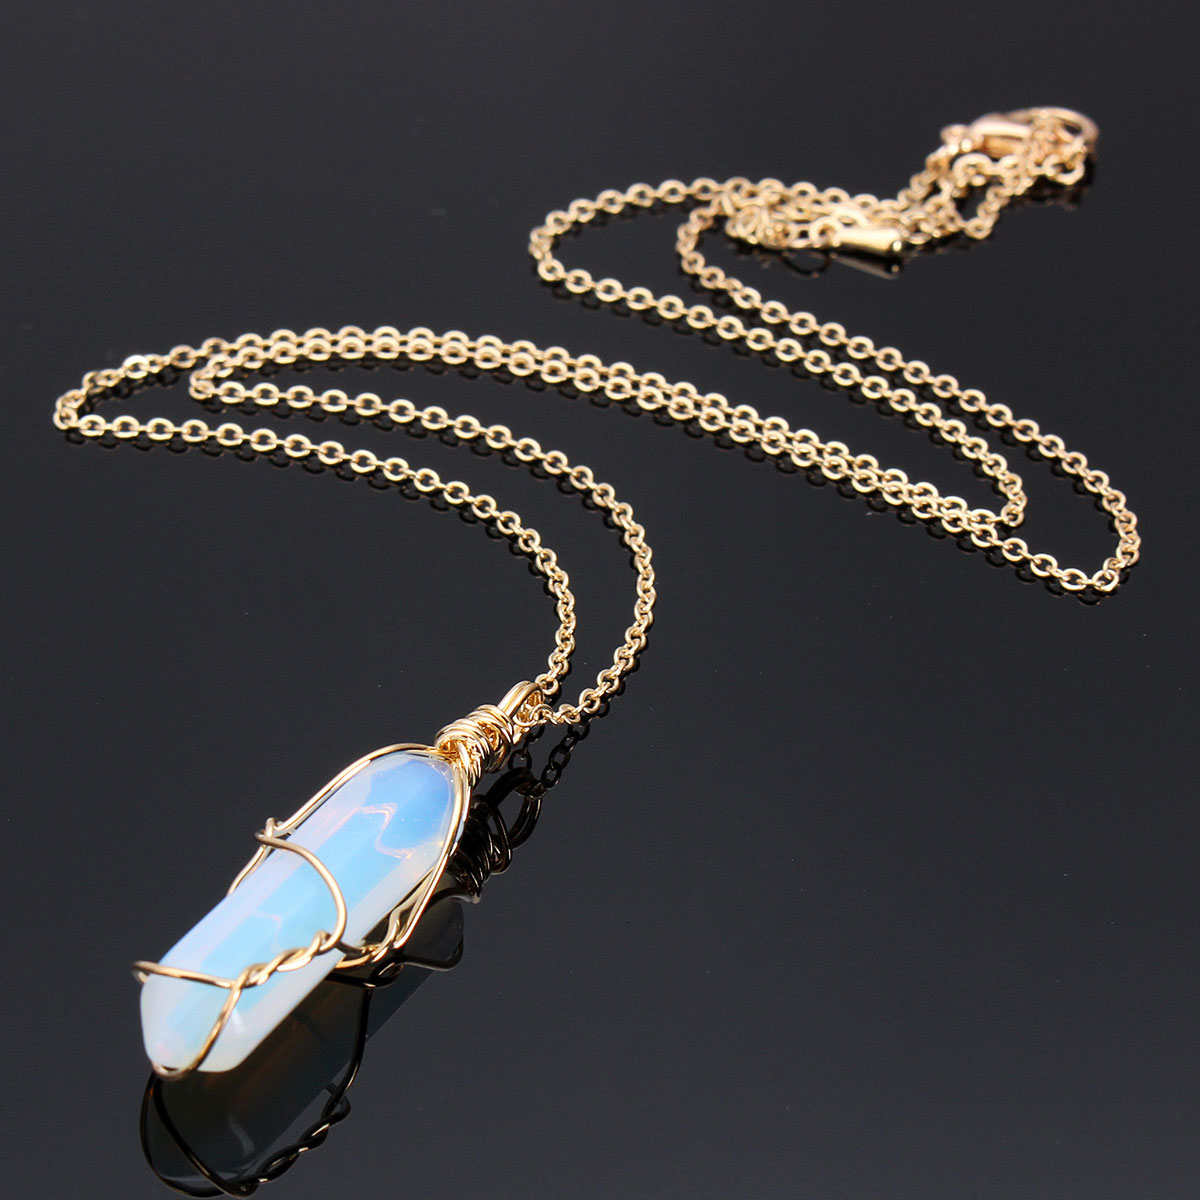 Hexagonal Prism Crystal Quartz Stone Pendant Necklace Jewelry